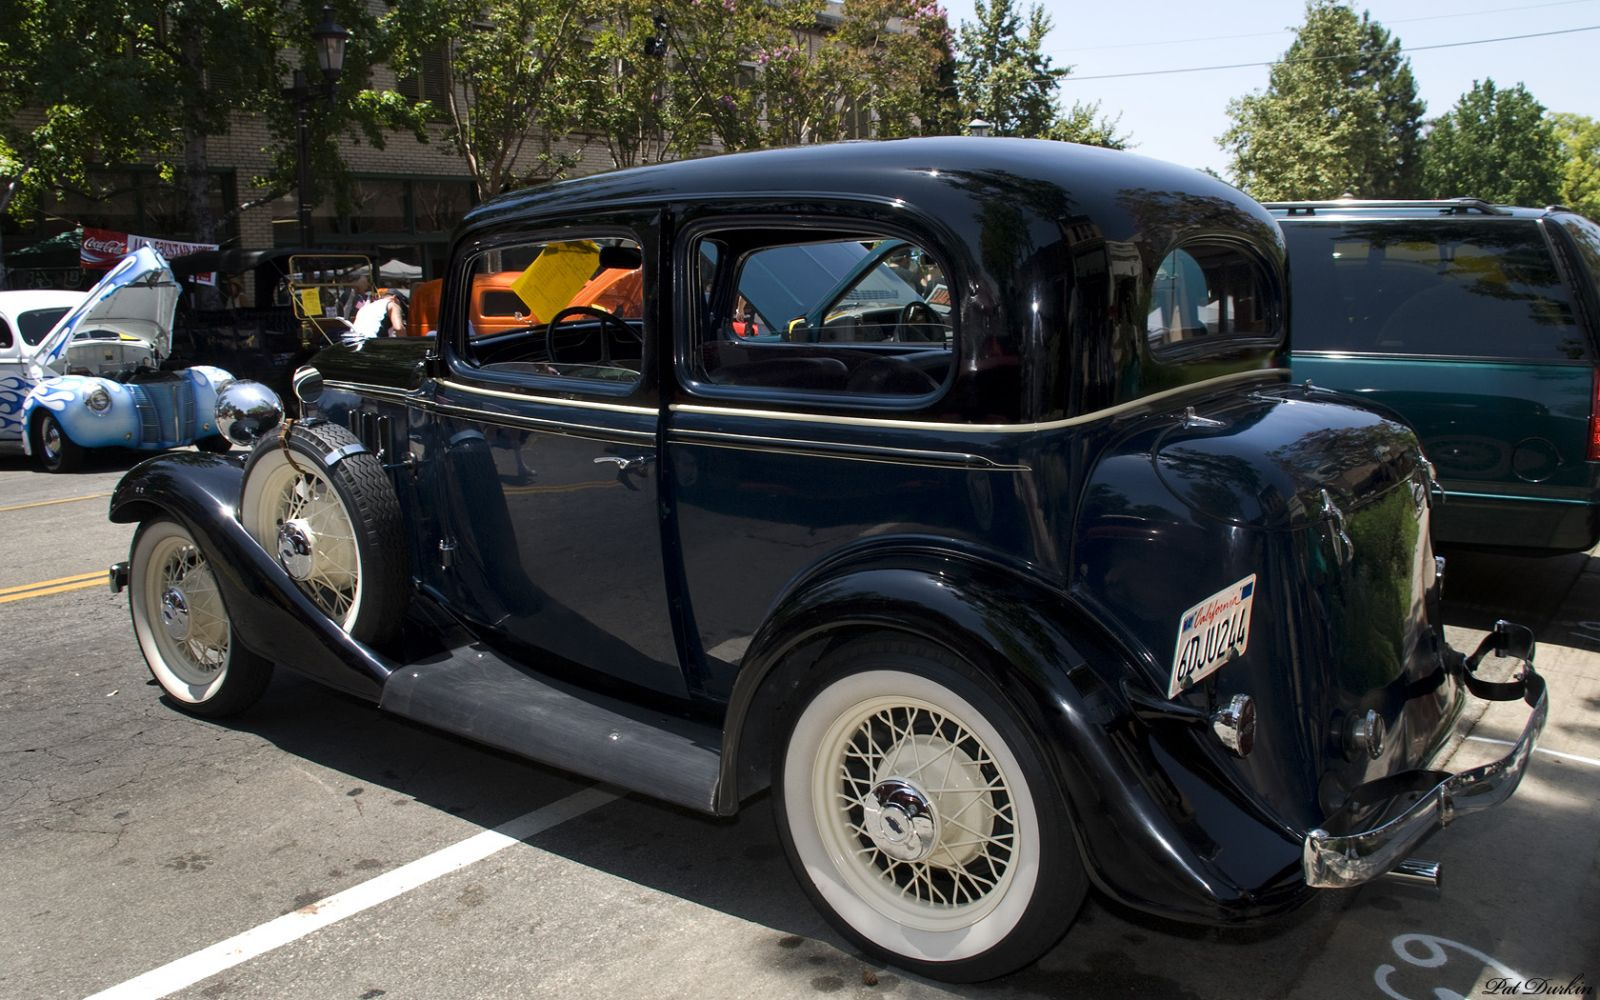 1933 Chevrolet Master Eagle 2-door sedan - blue & black - rvl1933 Chevr